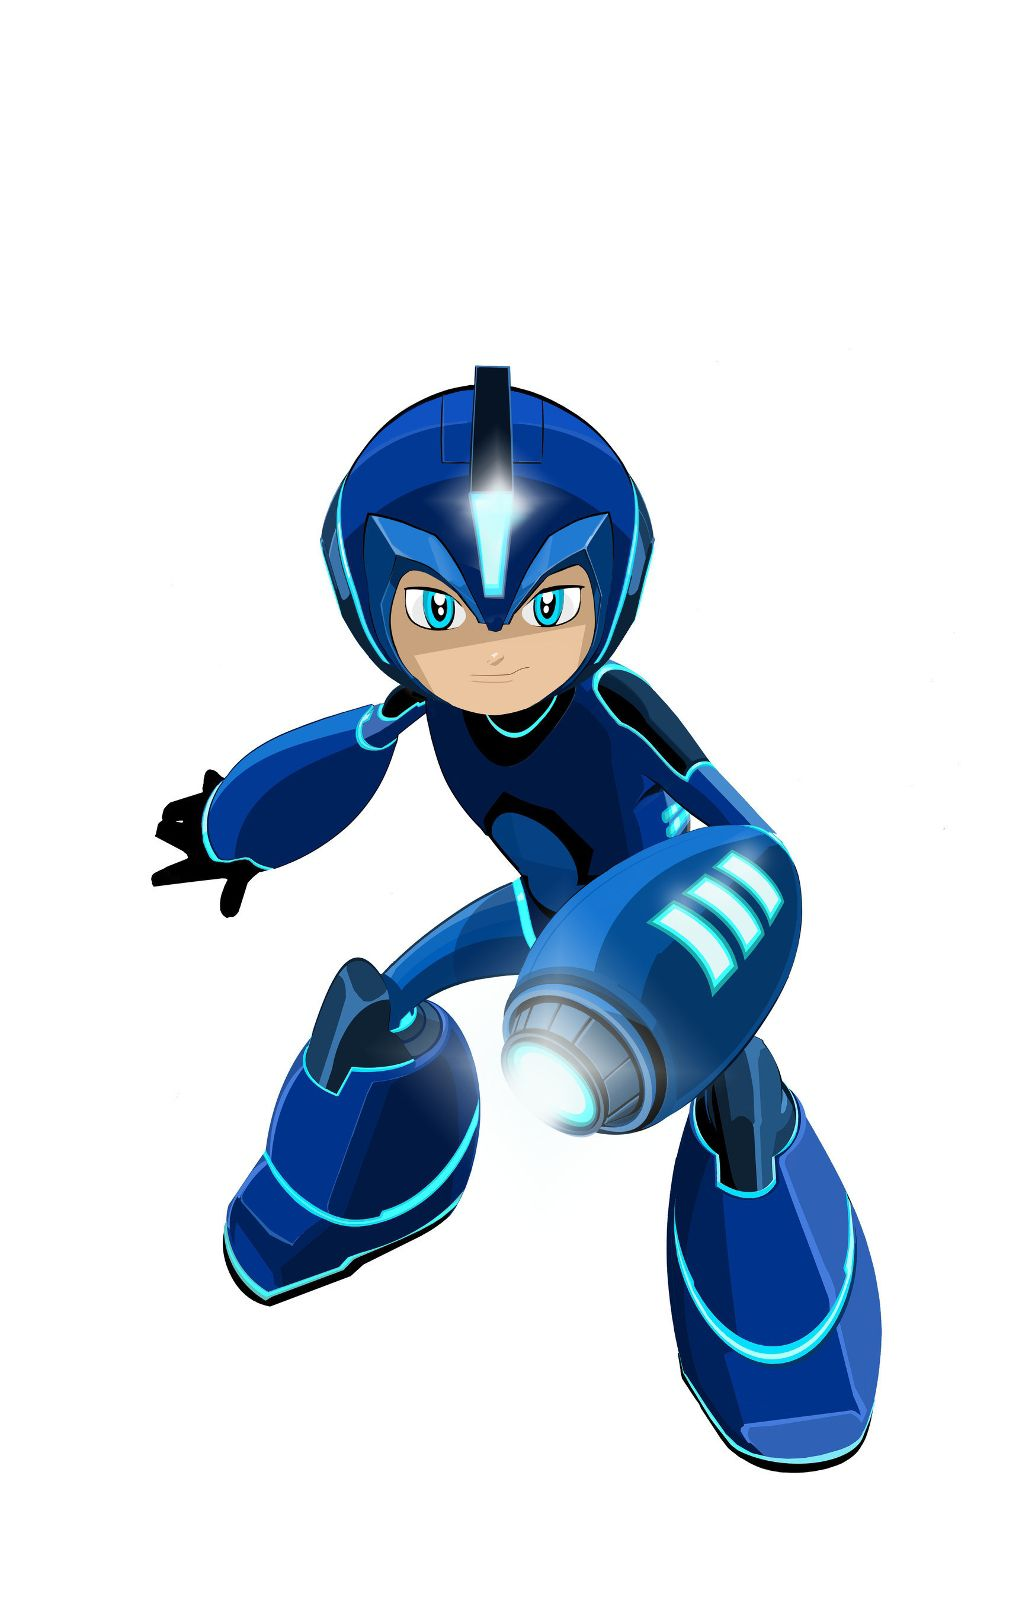 Mega Man's flexibility is the series' greatest strength and